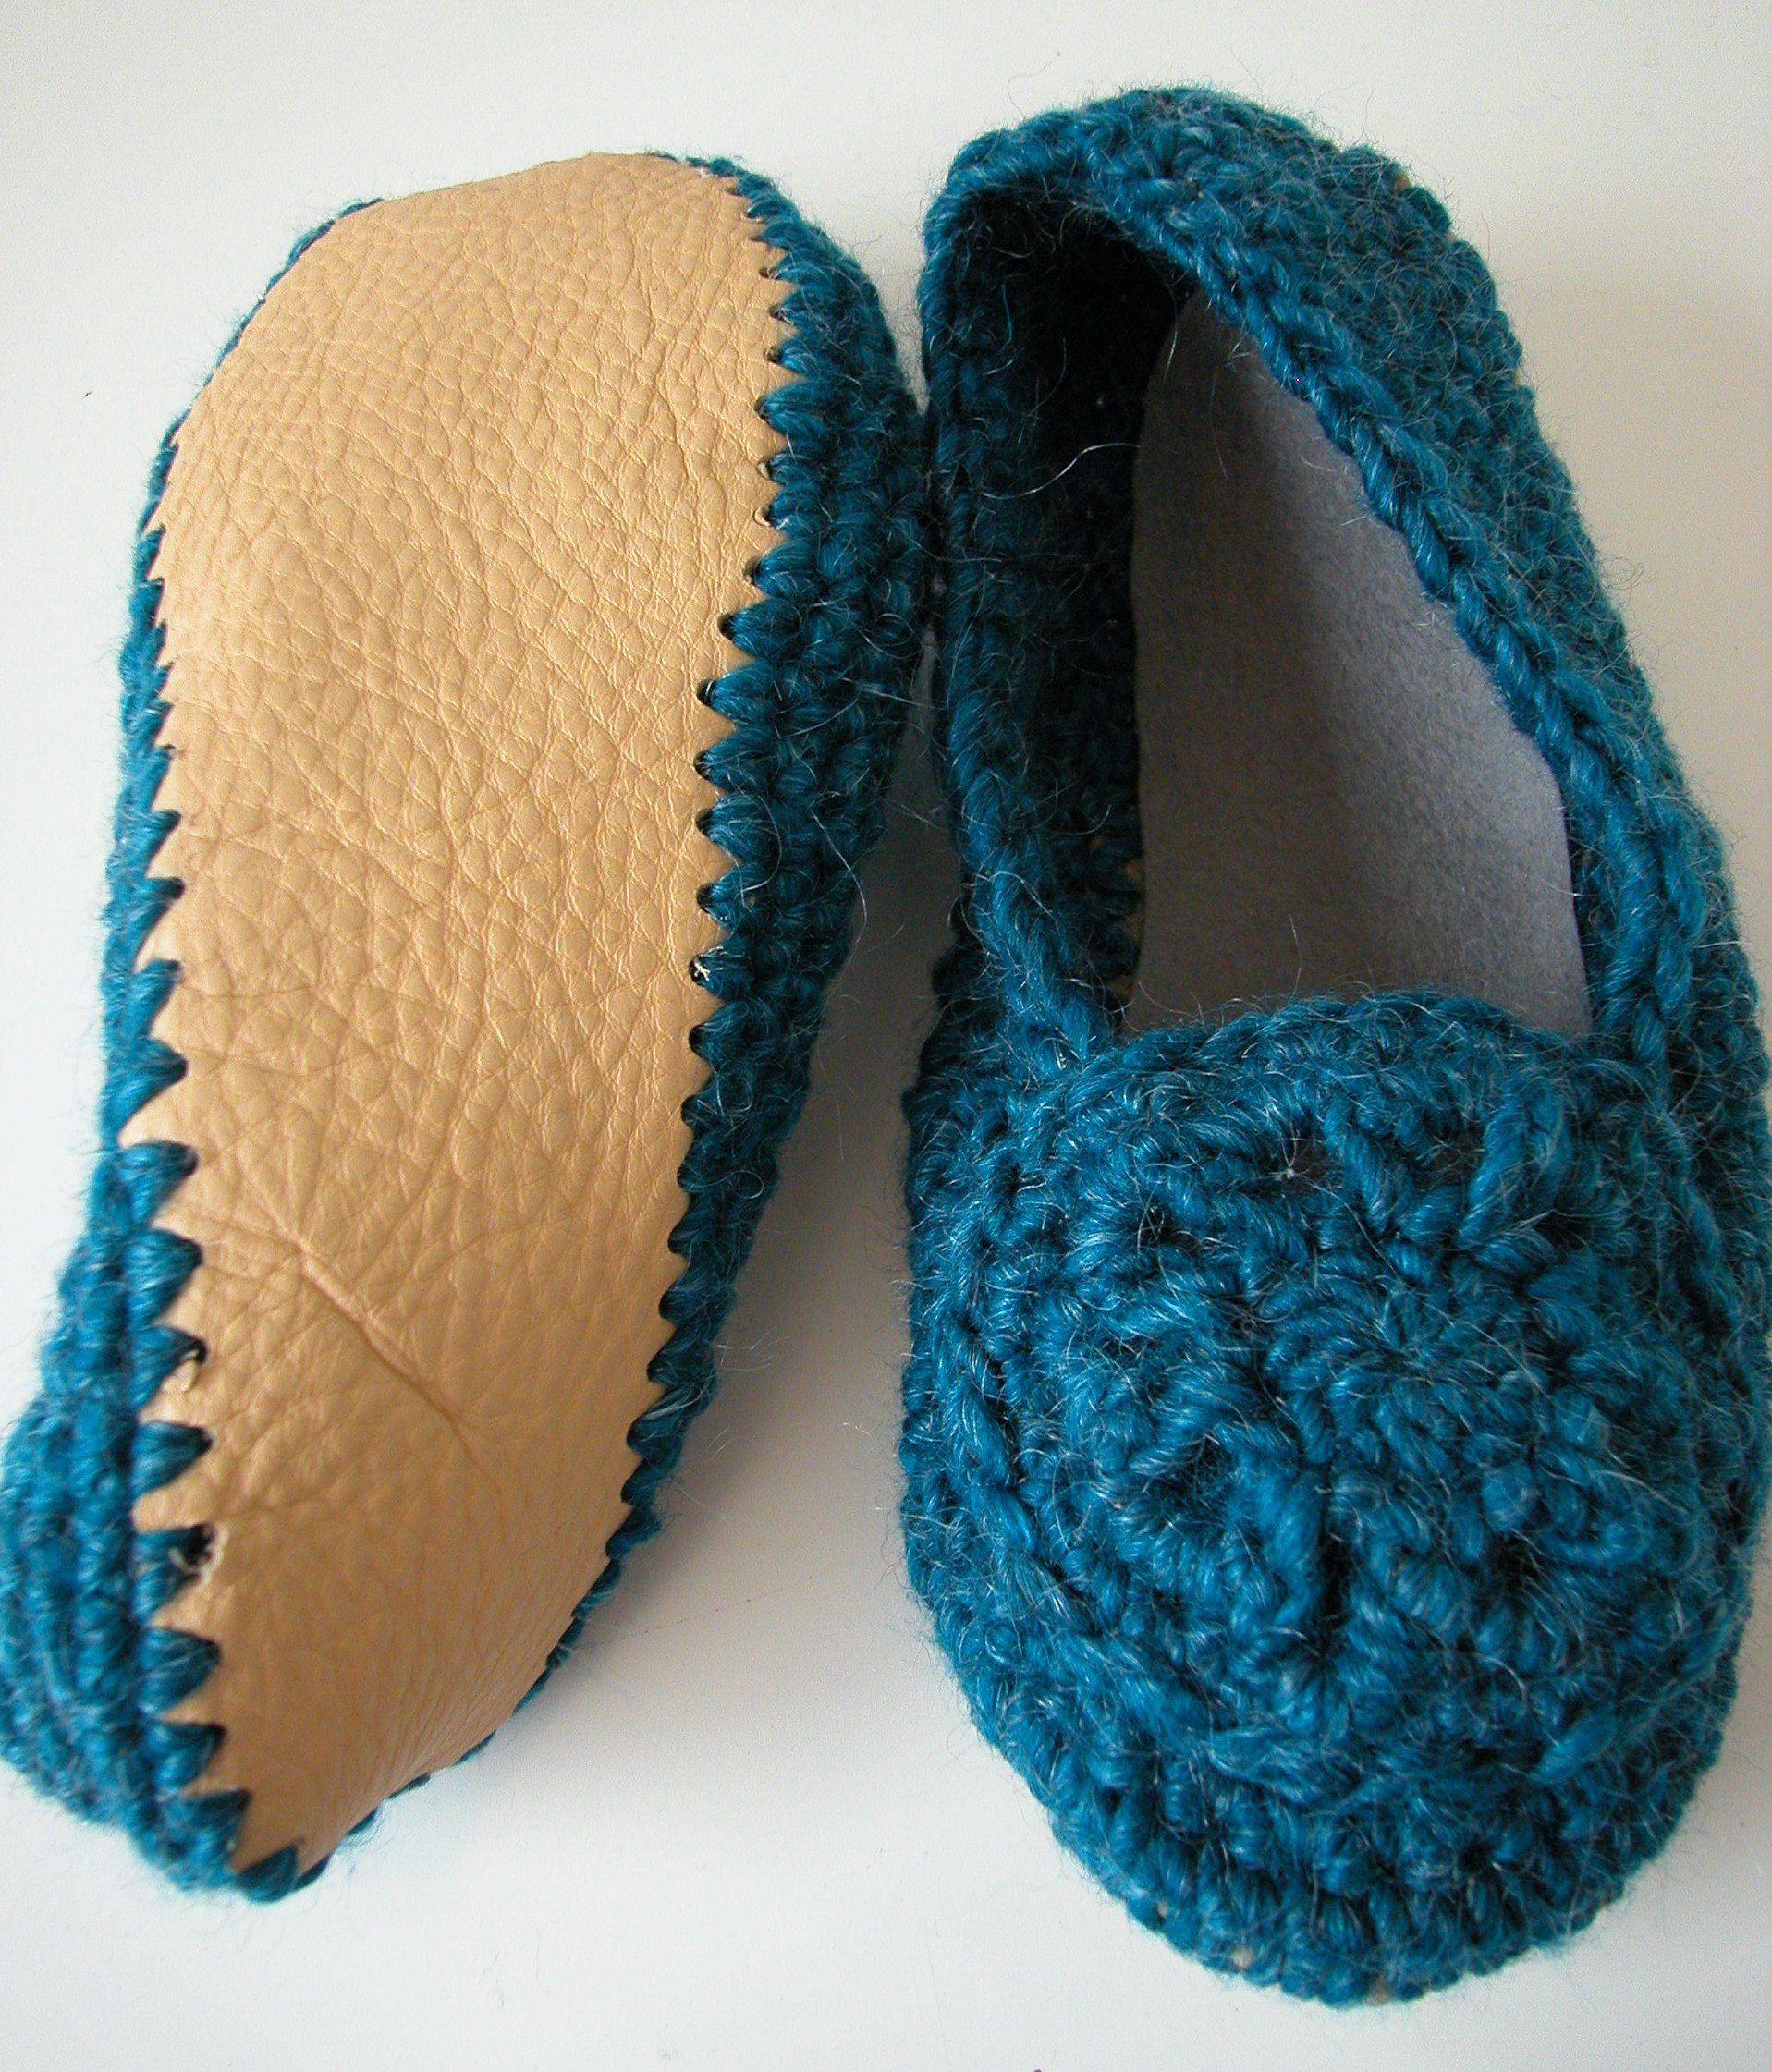 How To Crochet : crochet slipper class the knit cafe